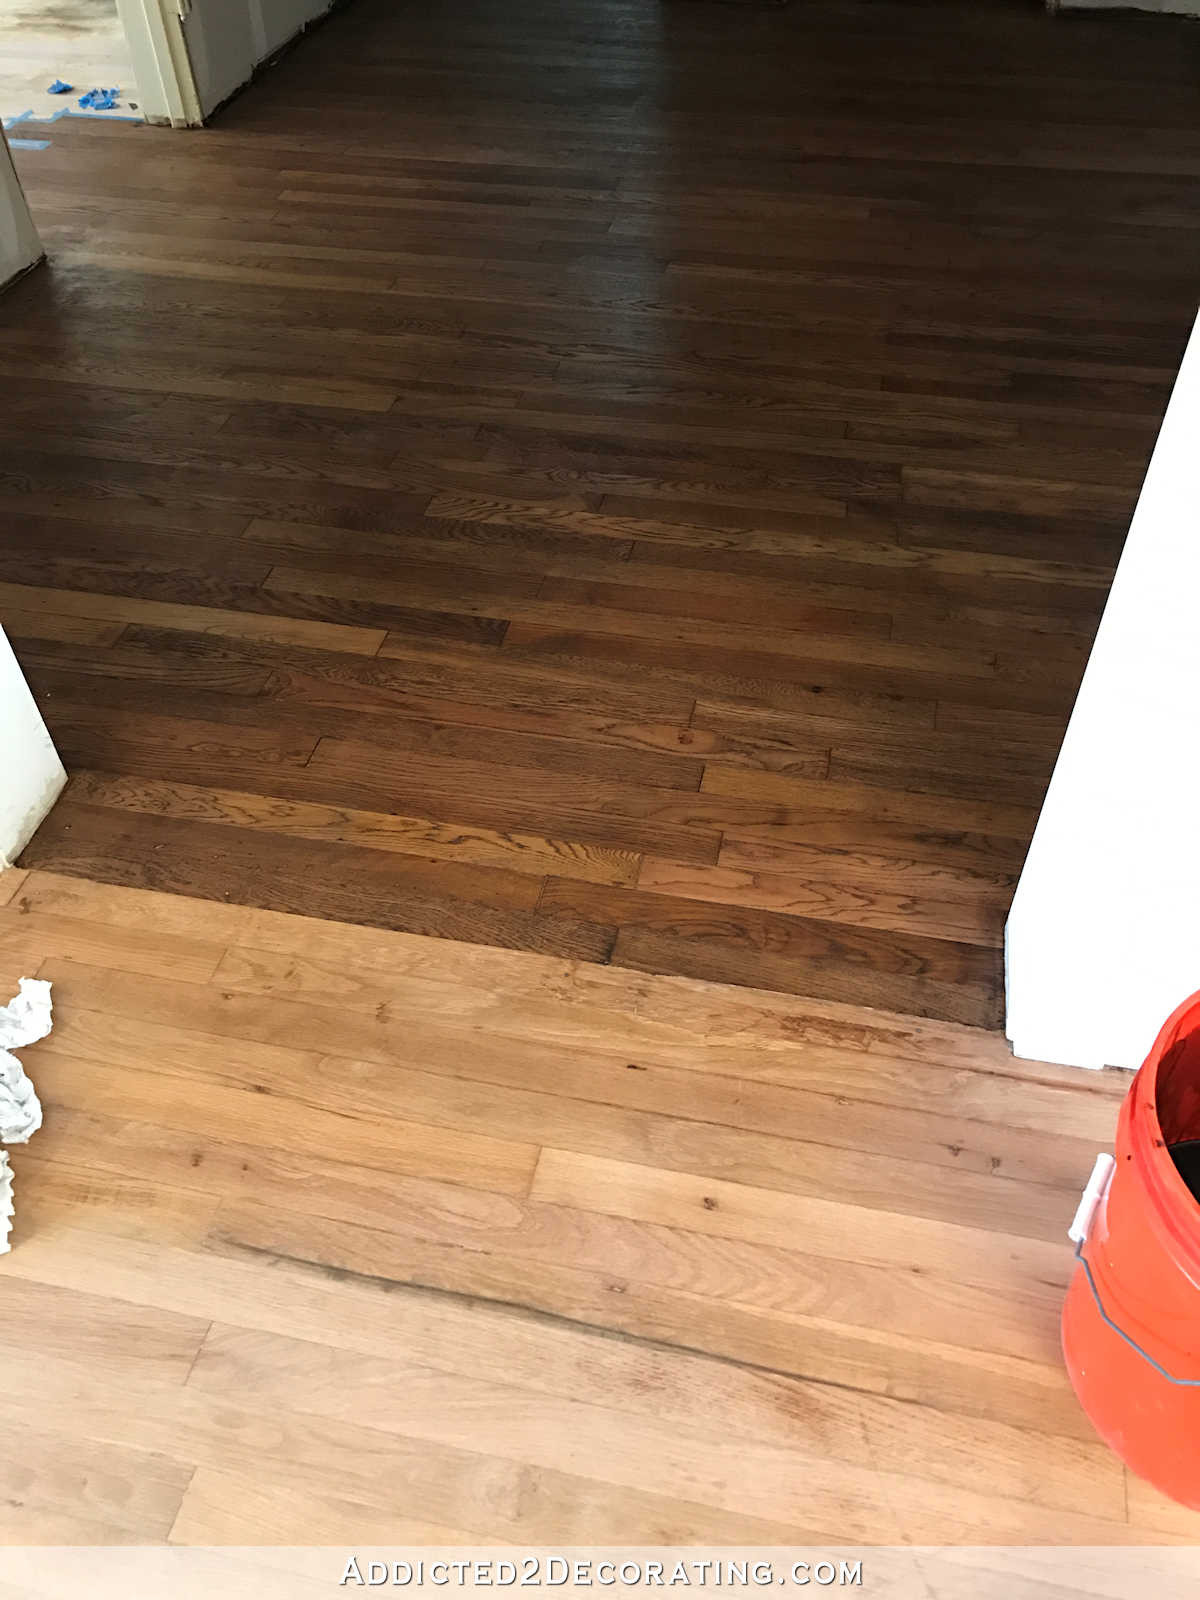 29 Stylish Unfinished Hardwood Flooring Denver 2021 free download unfinished hardwood flooring denver of adventures in staining my red oak hardwood floors products process throughout staining red oak hardwood floors 2 tape off one section at a time for